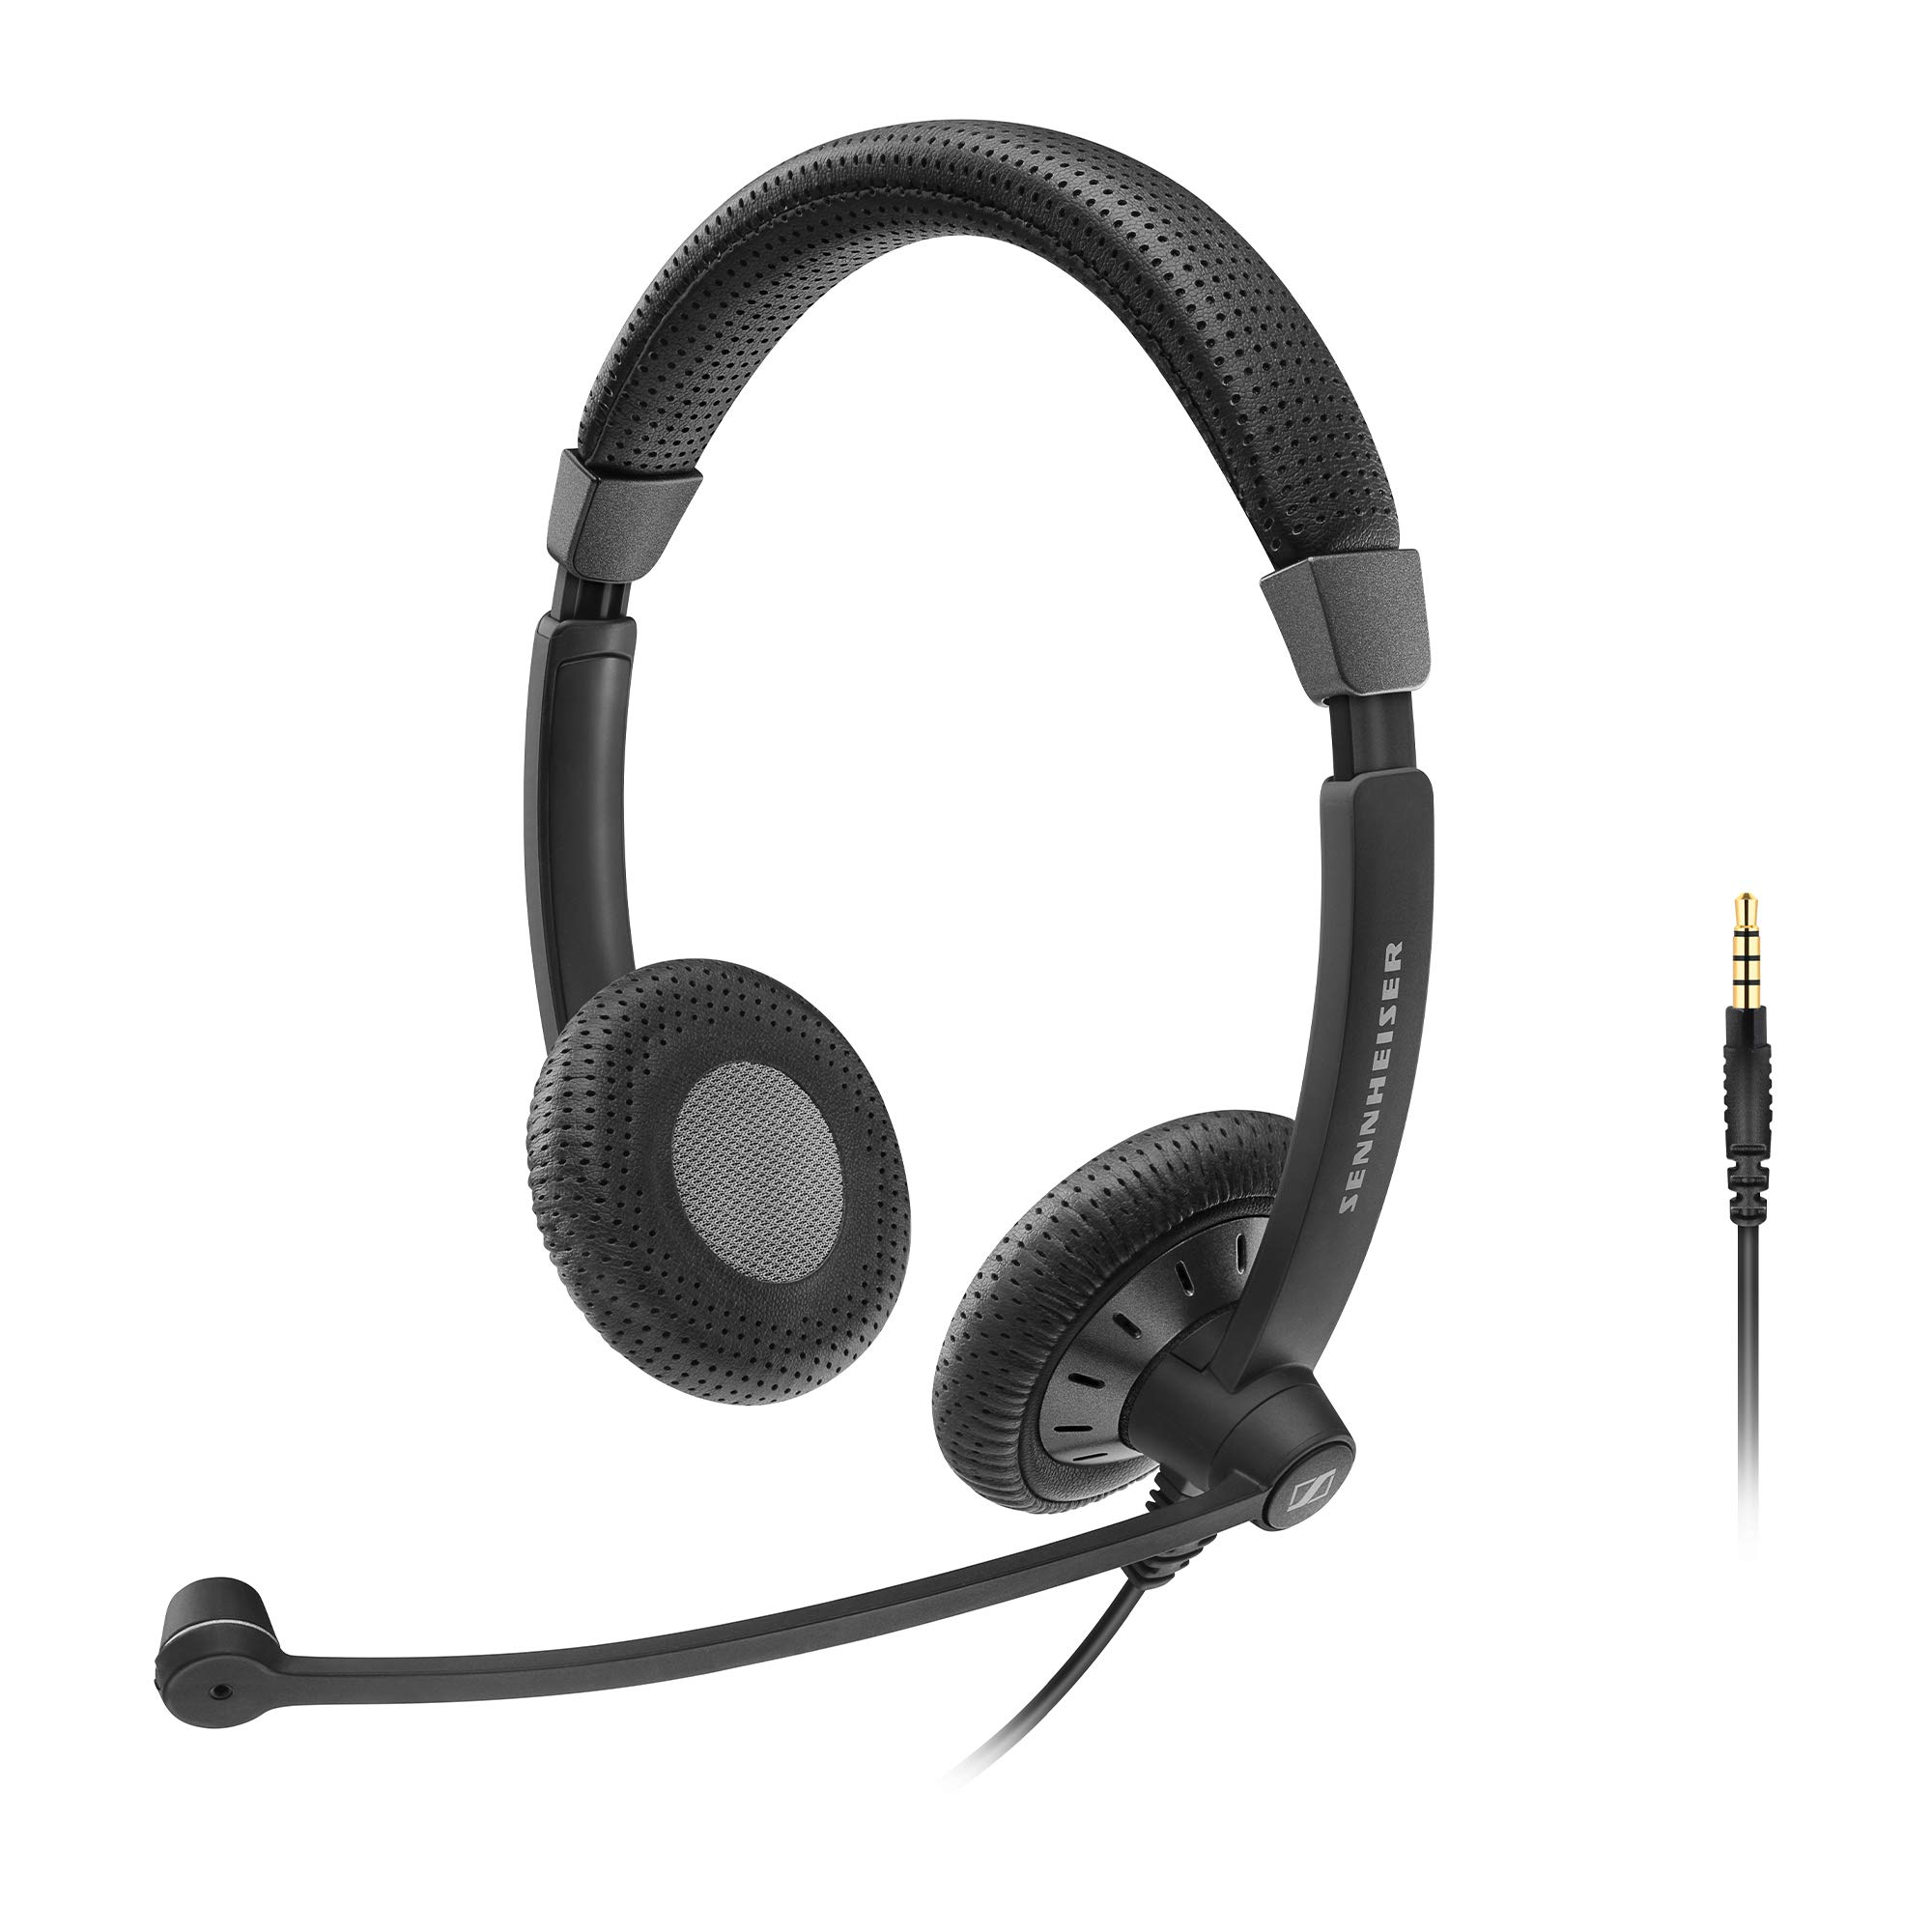 Sennheiser SC 75 (507085) - Double-Sided Business Headset | For Mobile Phone and Tablet | with HD Sound & Noise-Cancelling Microphone (Black) by Sennheiser Enterprise Solution